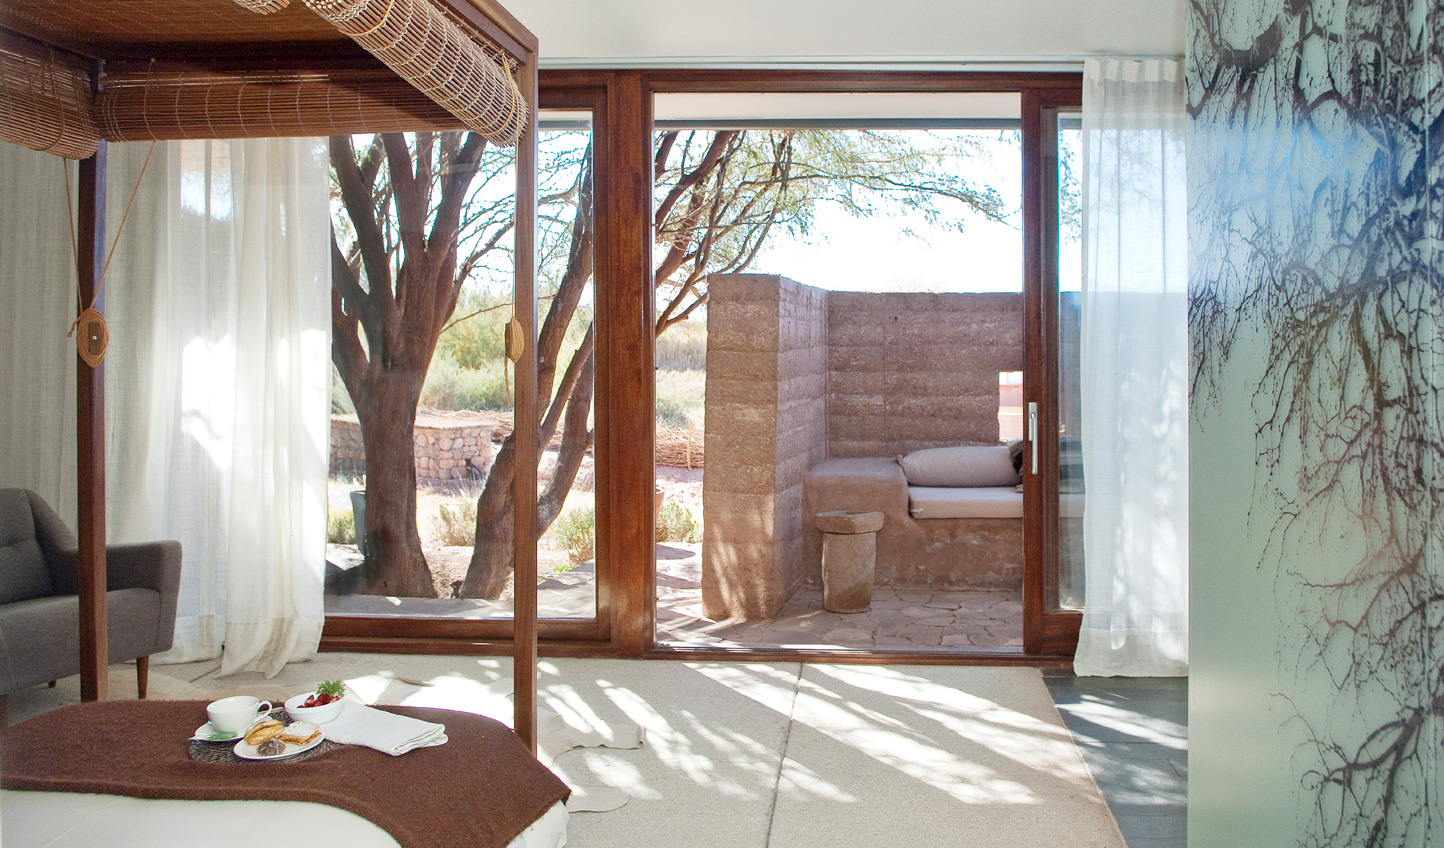 Wake up to your own desert backyard